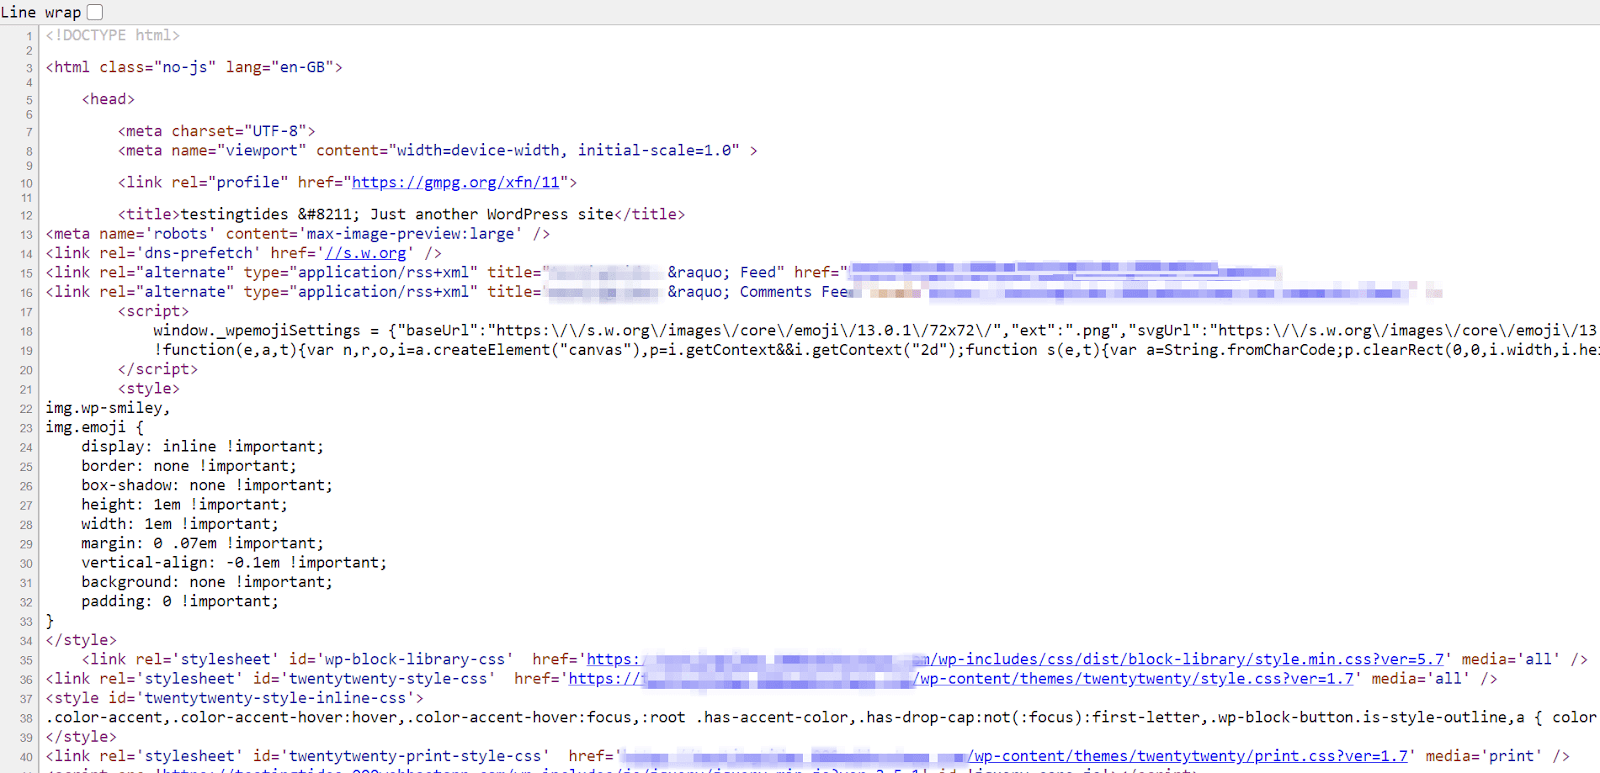 A sample of what a WordPress site's source code can look like. There are many lines of code in different colors, as well as links.